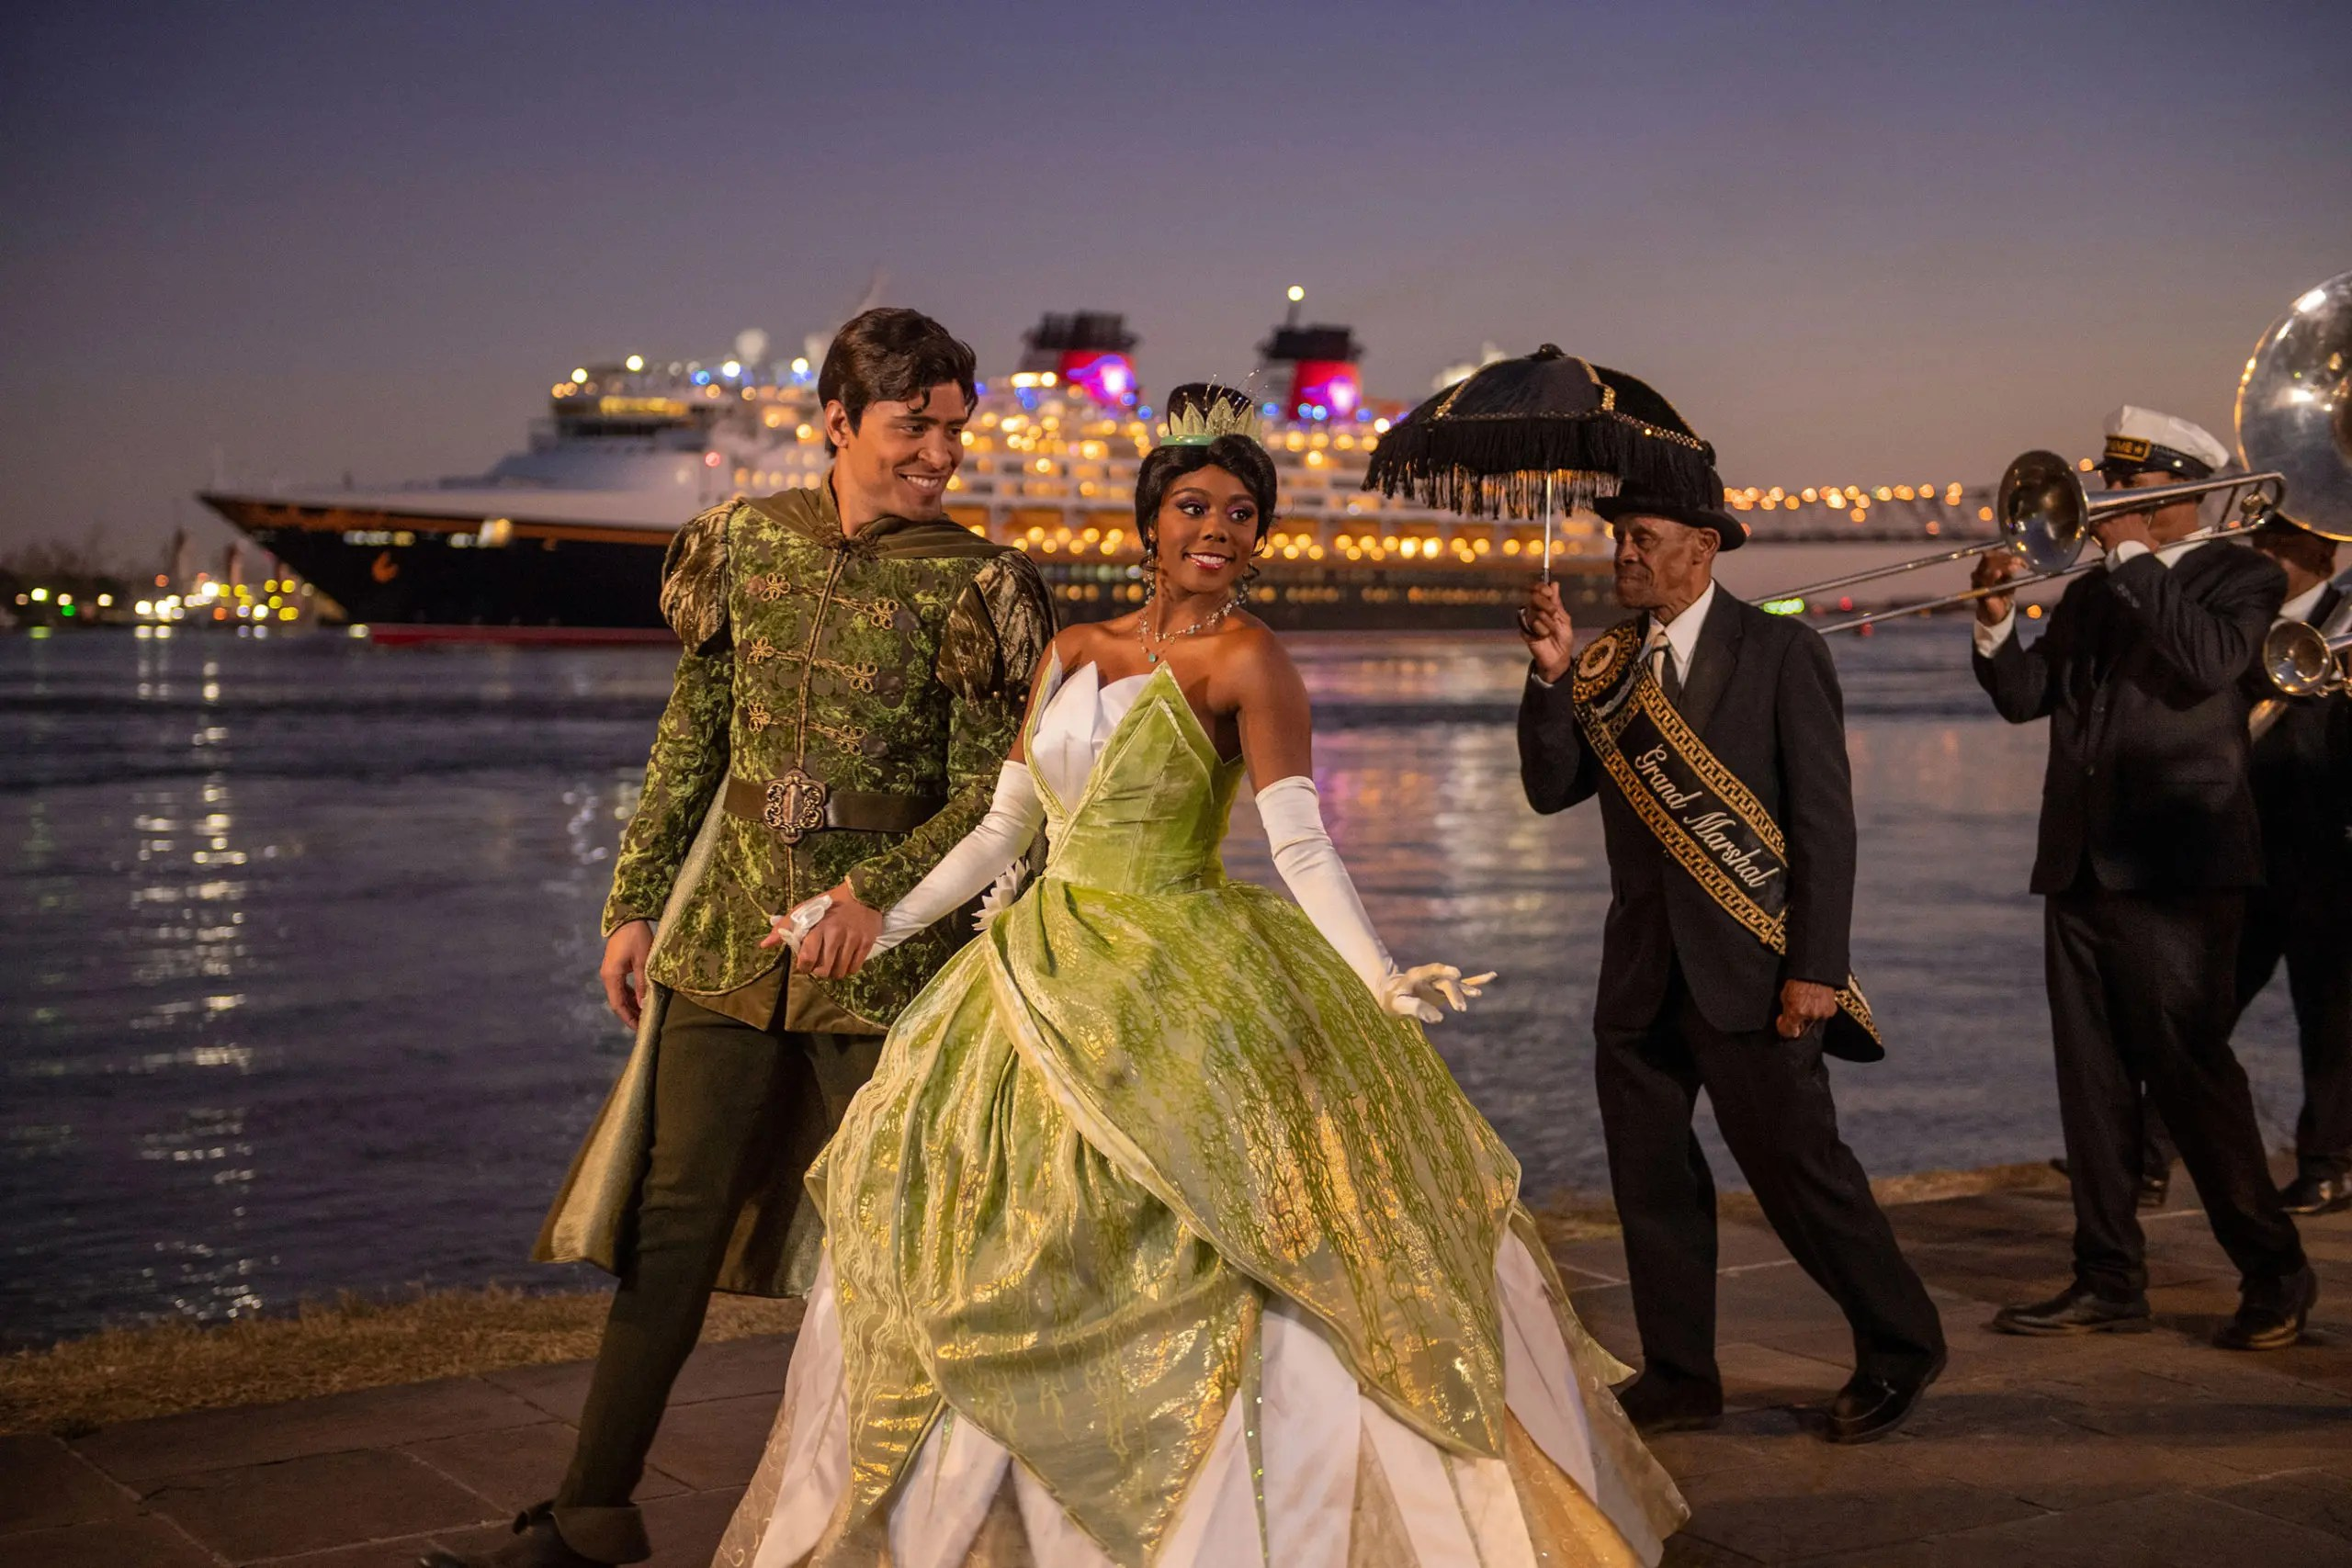 Disney Wonder Sets Sail on Inaugural Voyage from New Orleans